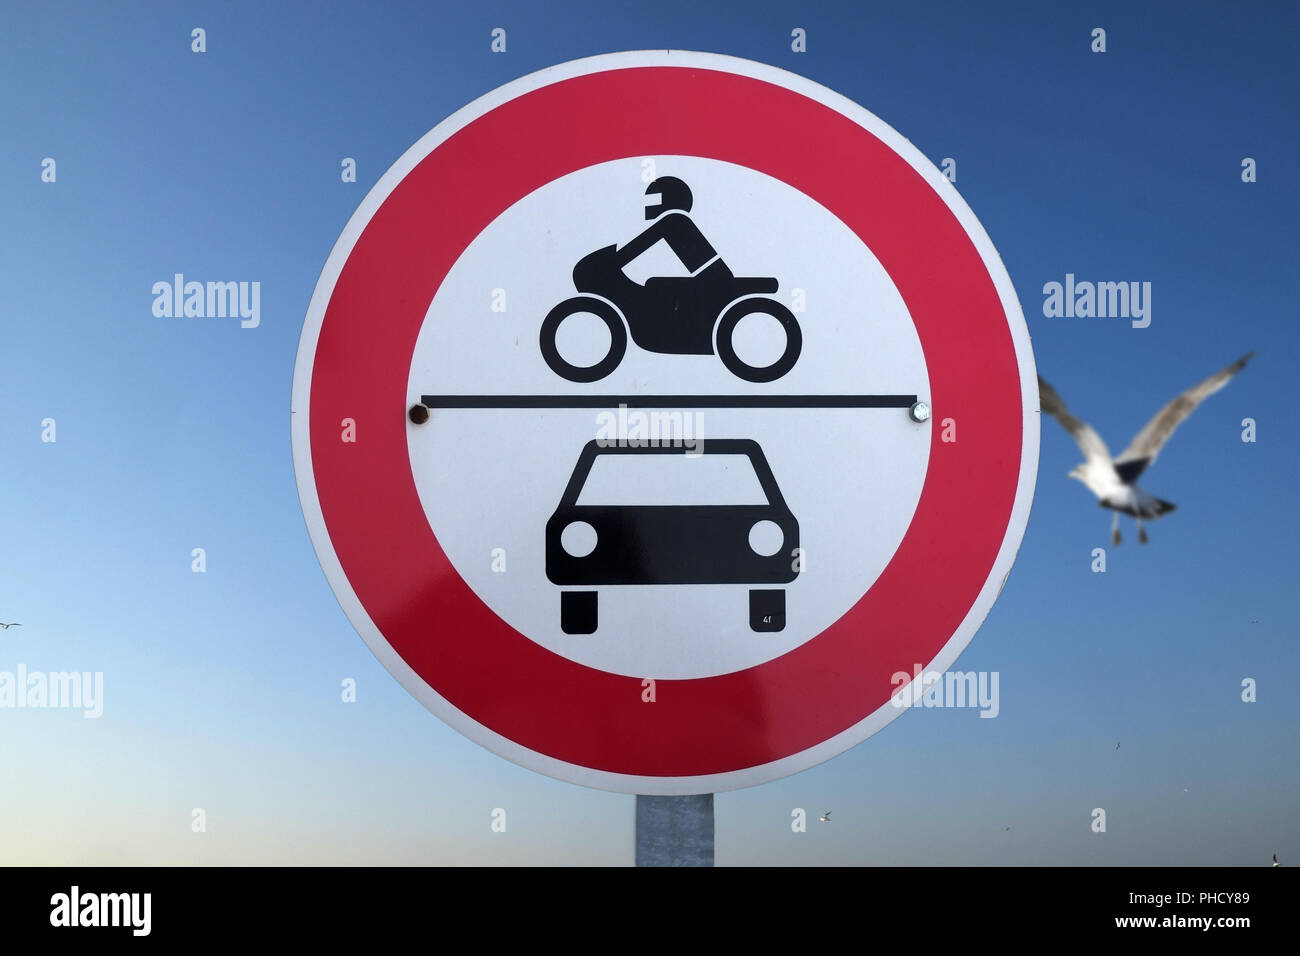 Traffic sign: Prohibition for motor vehicles - Stock Image